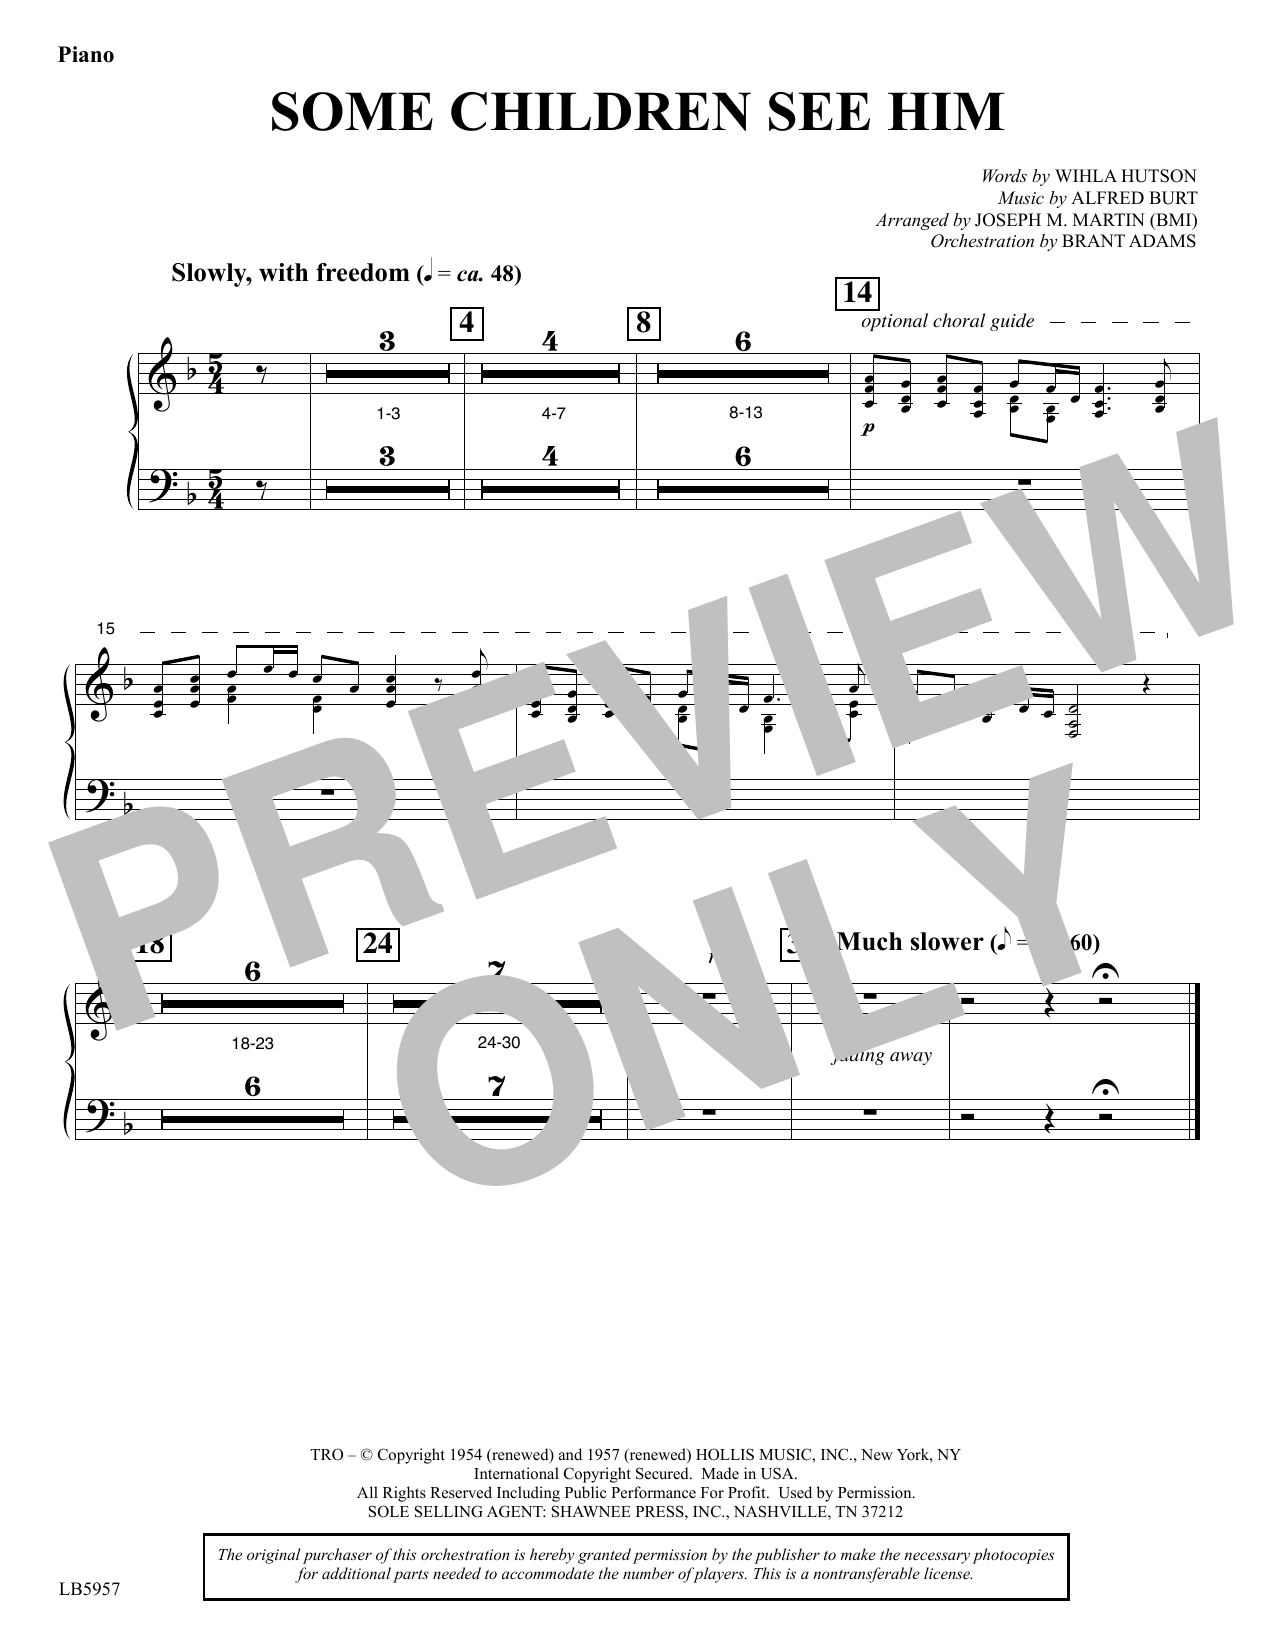 Some Children See Him (arr. Joseph M. Martin) - Piano Sheet Music